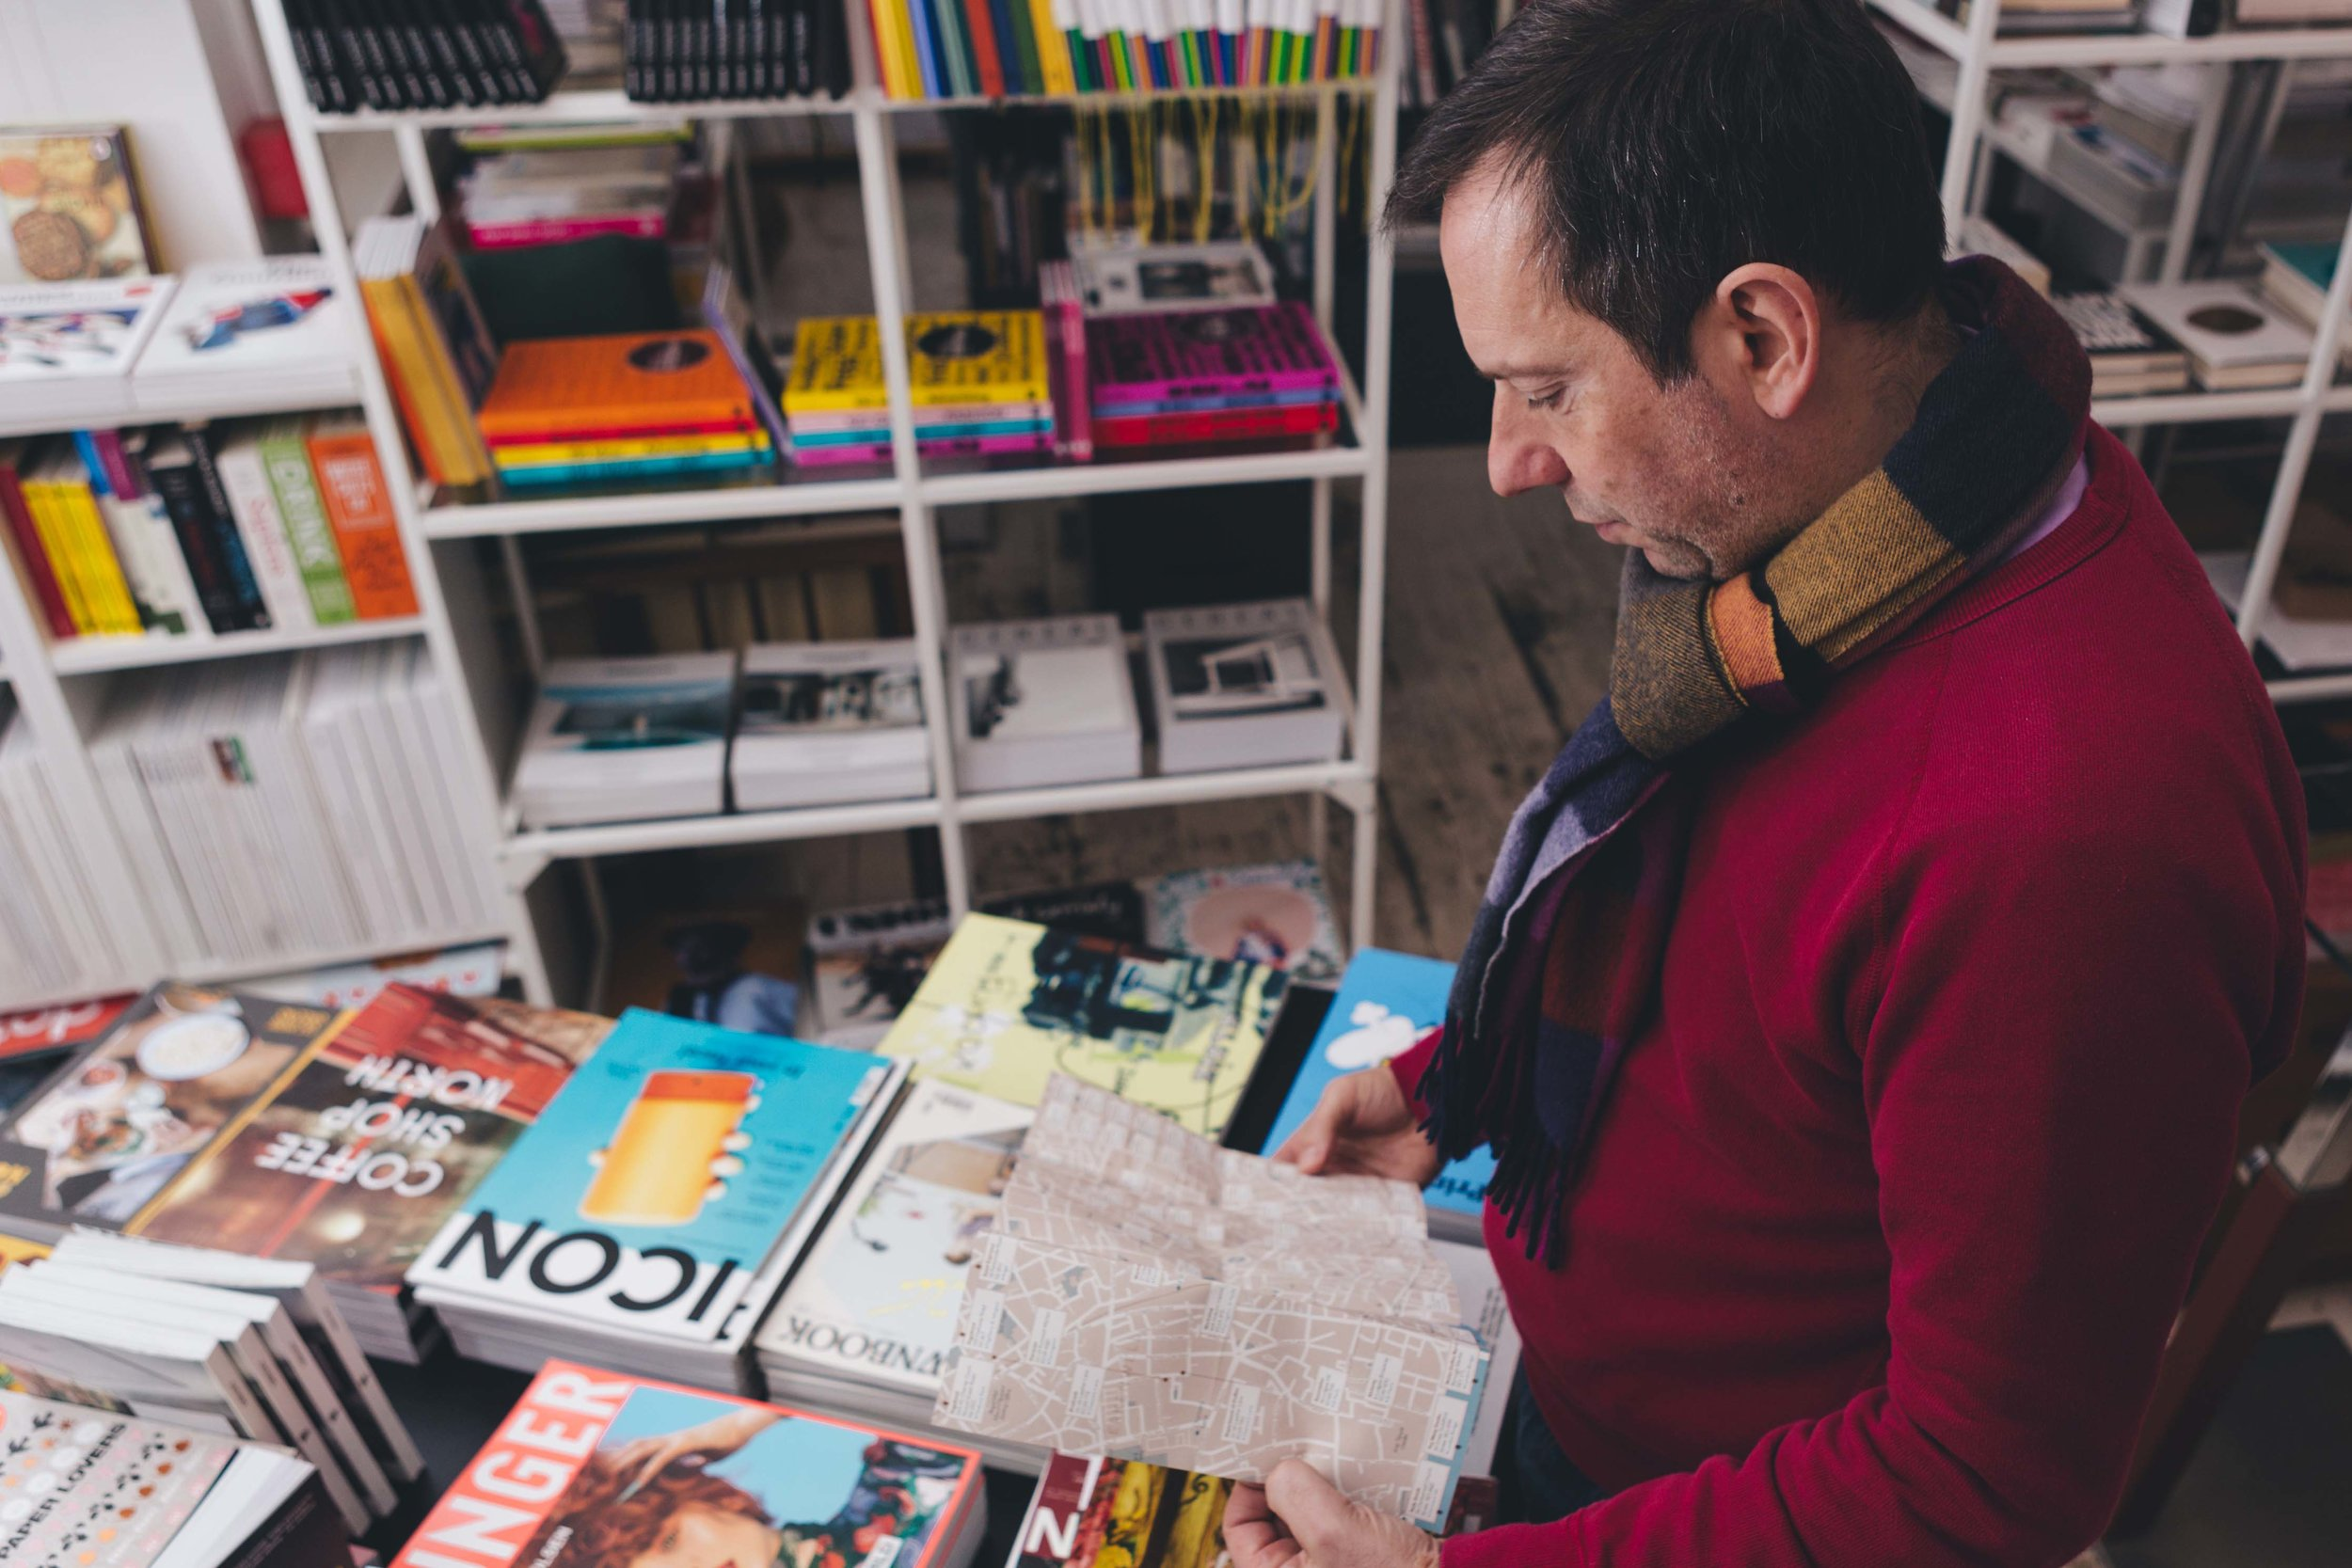 book shop filled with colourful books, with man looking at map in the forefront